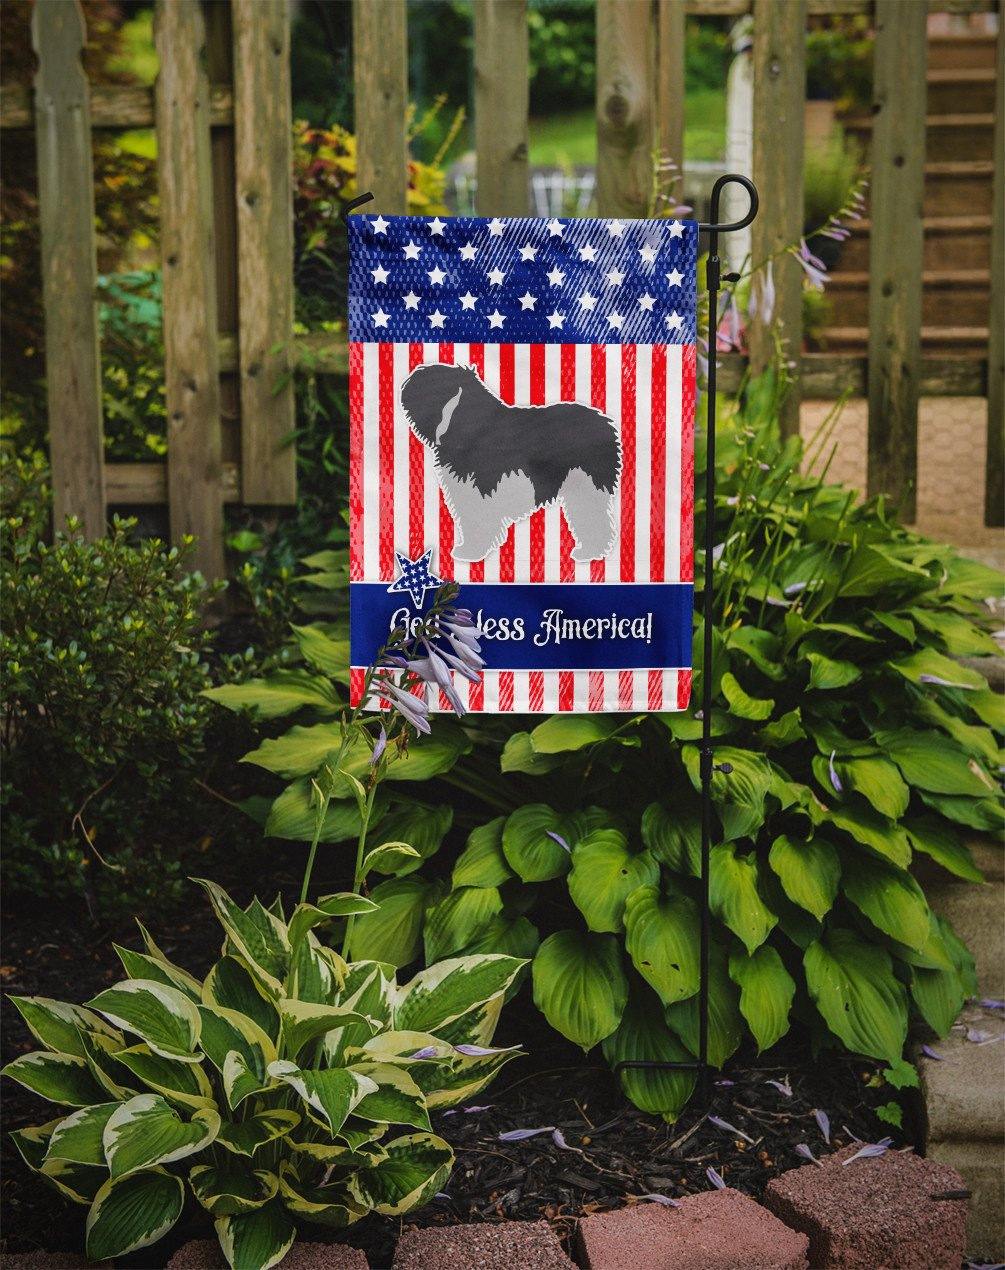 USA Patriotic Polish Lowland Sheepdog Dog Flag Garden Size BB3332GF by Caroline's Treasures